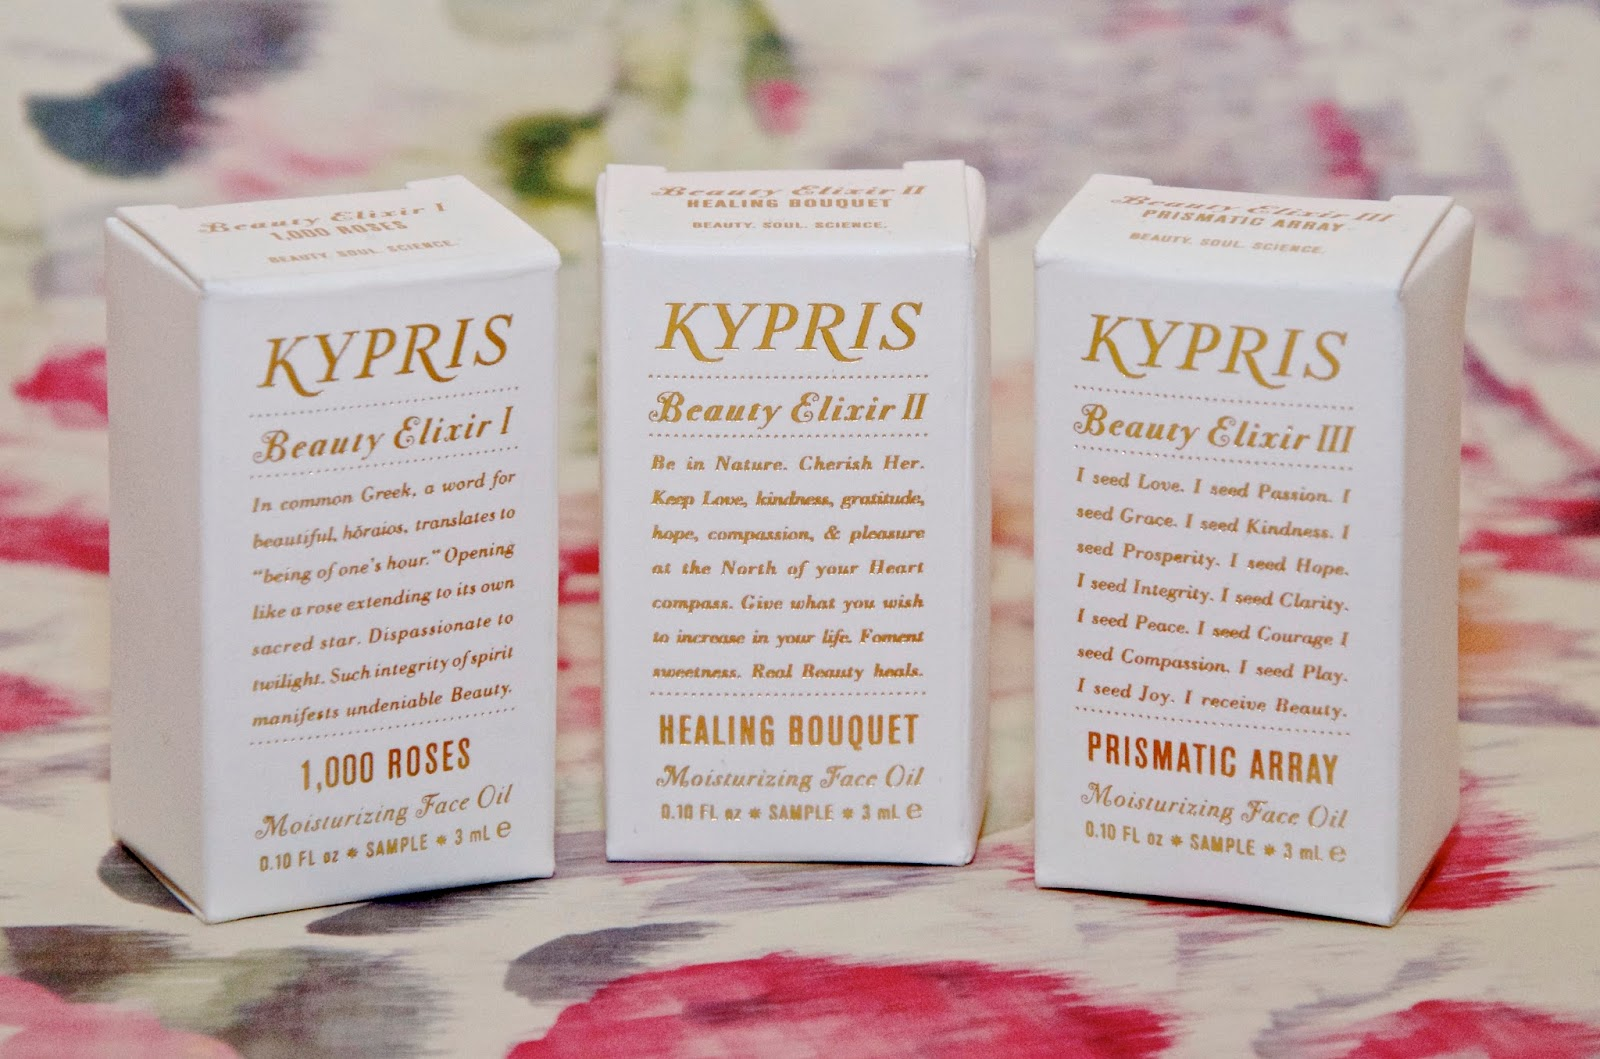 Kypris Beauty Elixir face oils